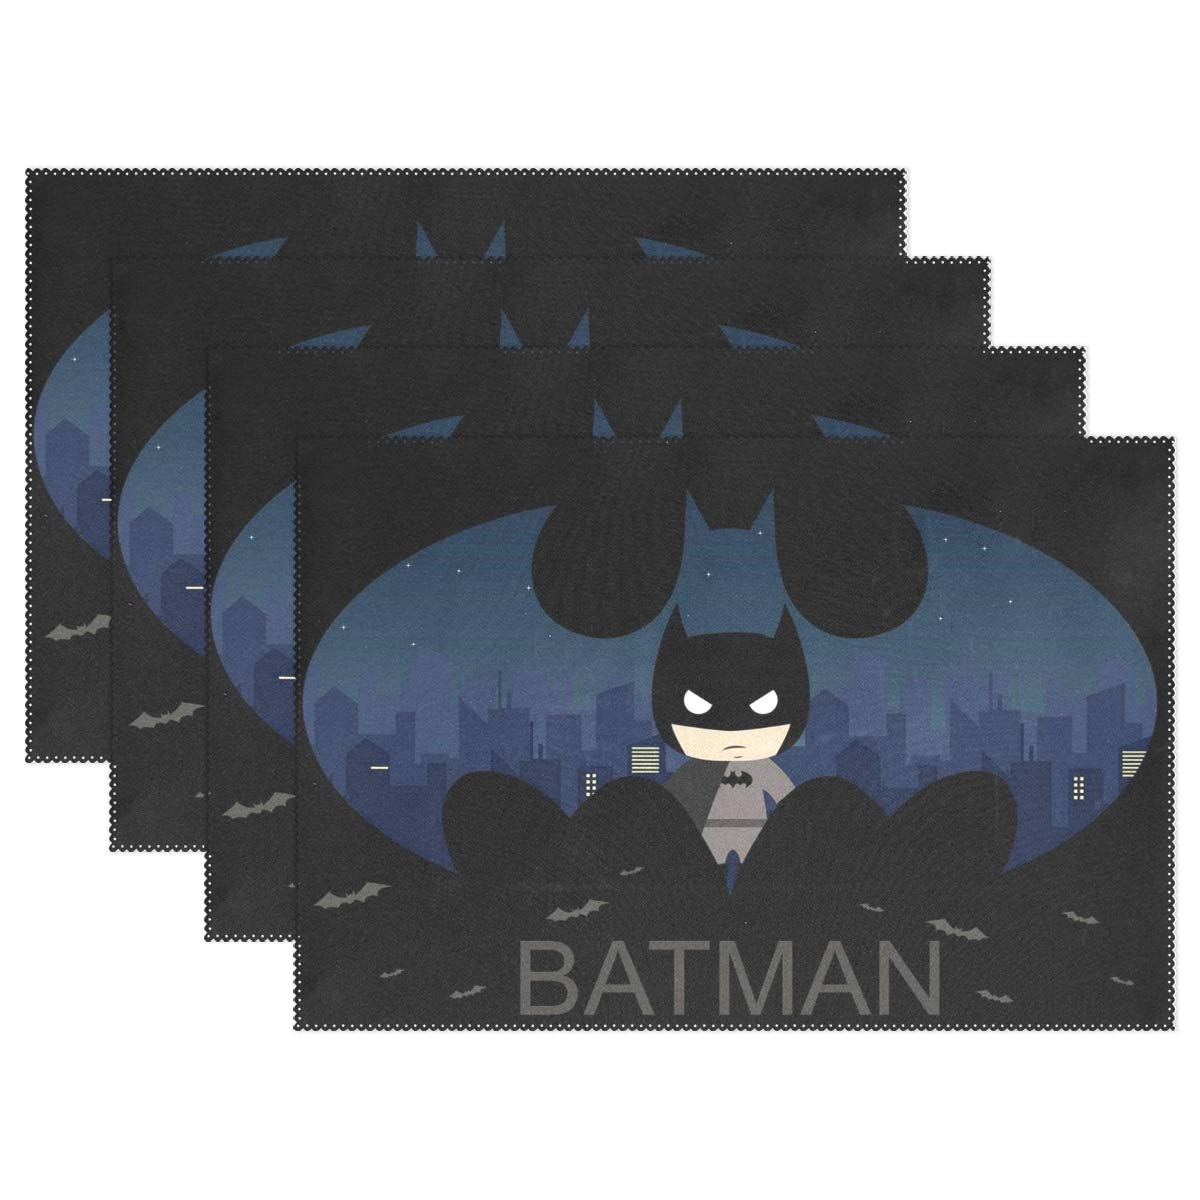 Pig One Cartoon Batman 12x18 in Polyester Fibers Creative European-Style Printing Decoration Table Mat Insulation Cushion Household Rectangular Plate Mat for Dining Room Kitchen Table Decor